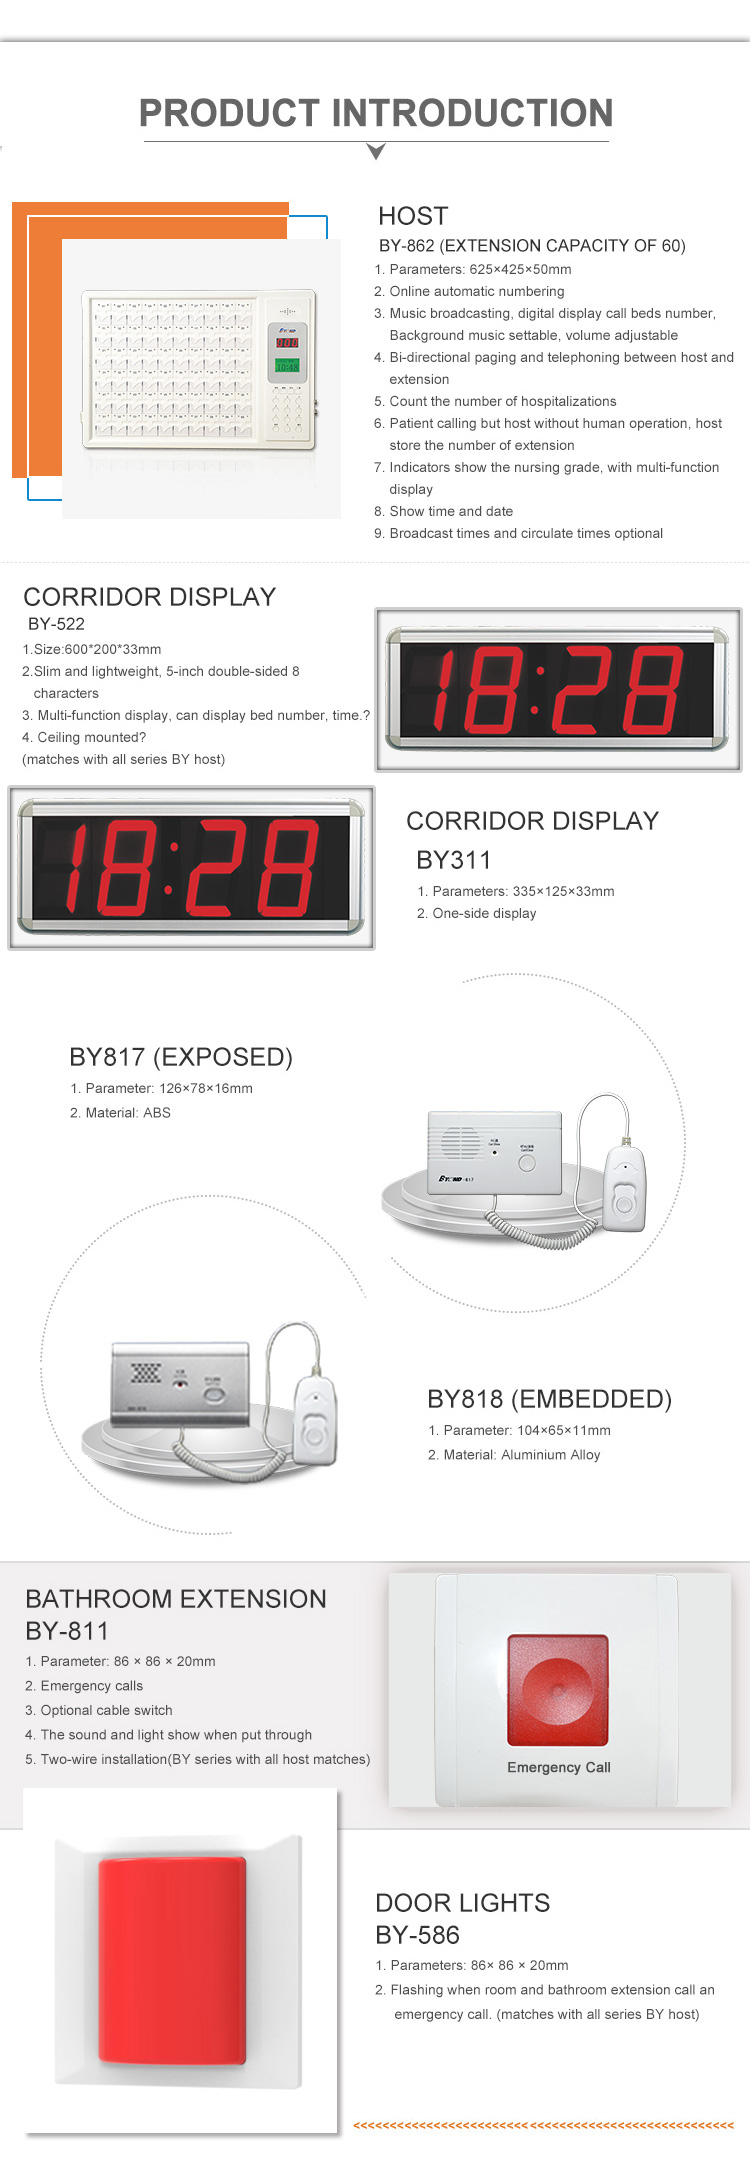 Byond Health Care By891 Hospital